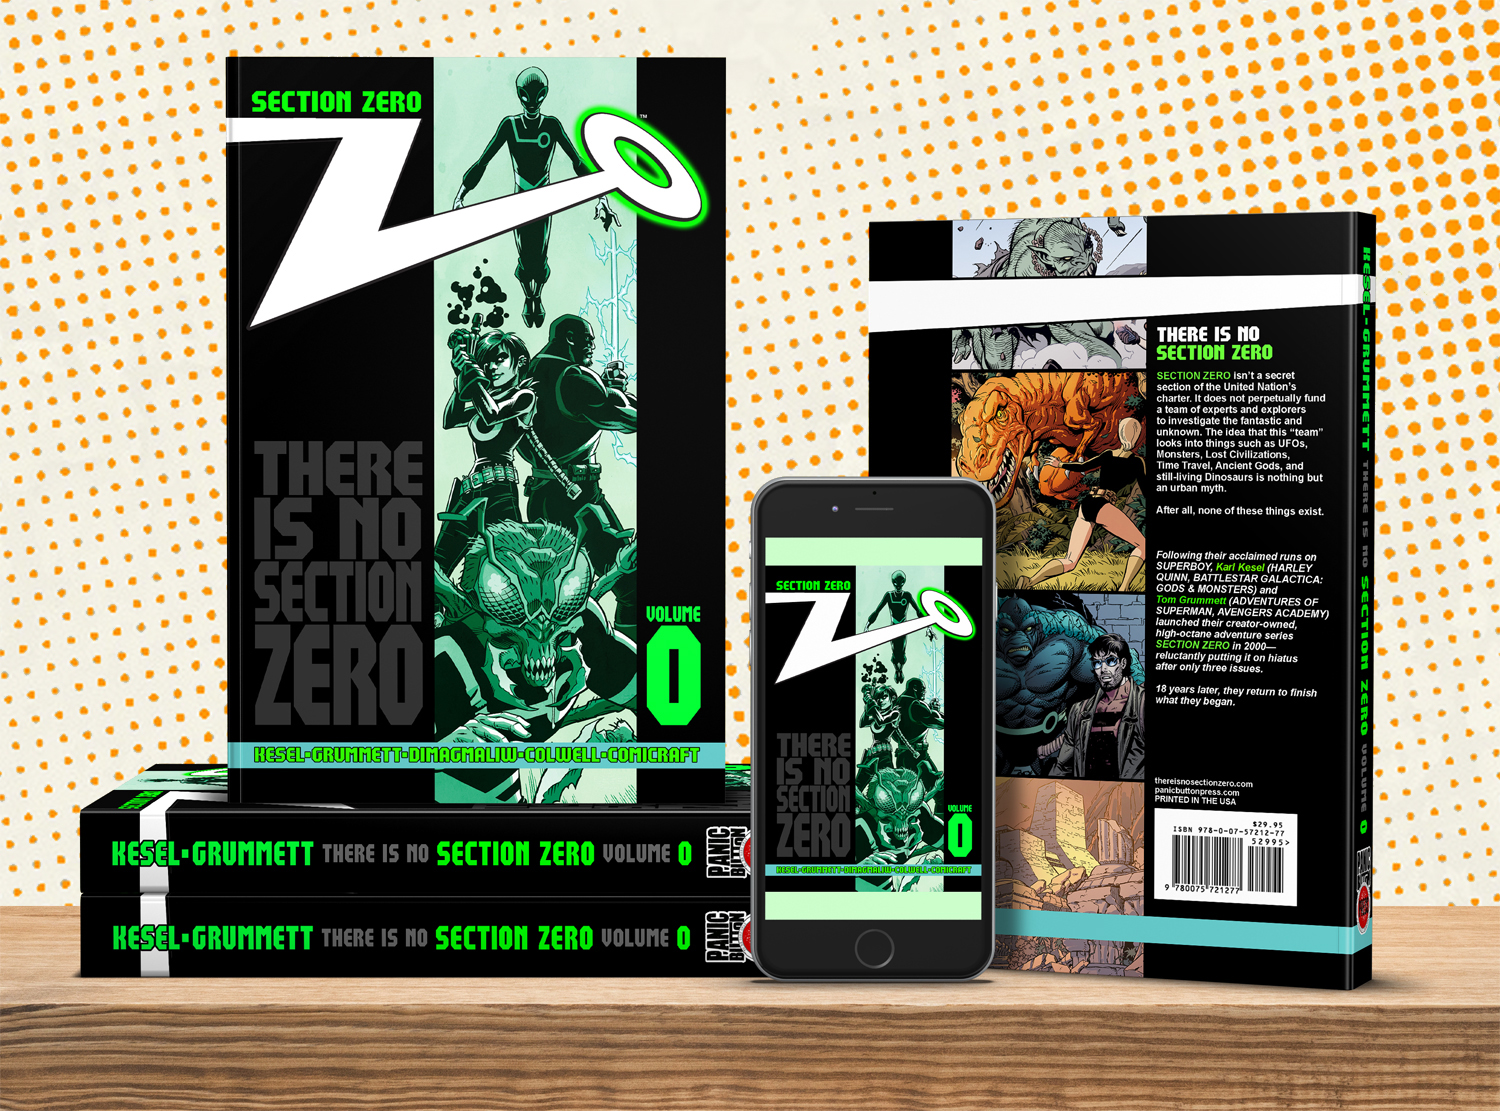 SECTION ZERO, VOLUME 0 - If you missed the KICKSTARTER, you can still get the book. Plus many of the rewards we offered. Because that's how much we like you.